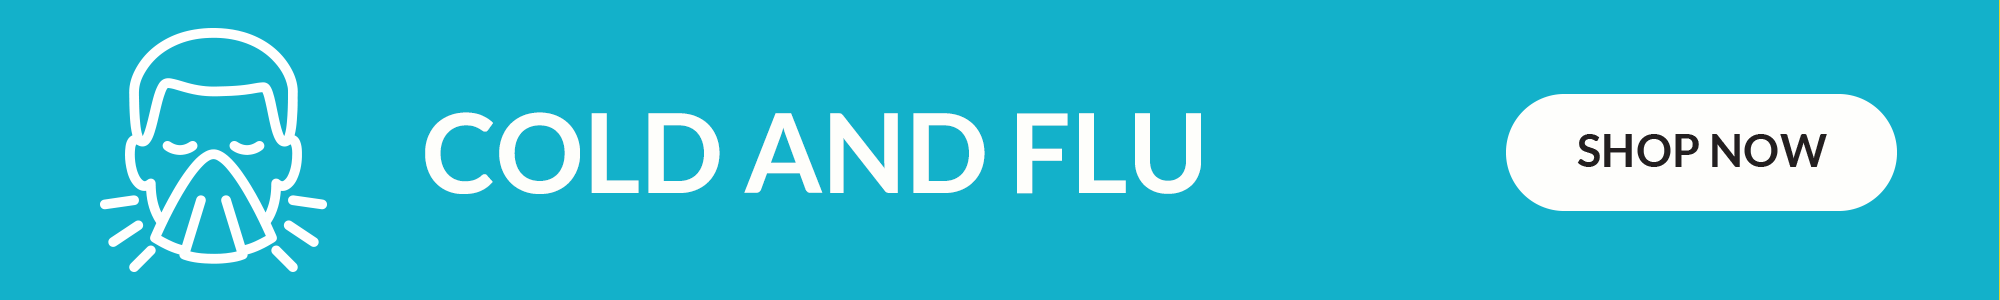 cold-and-flu-header.png